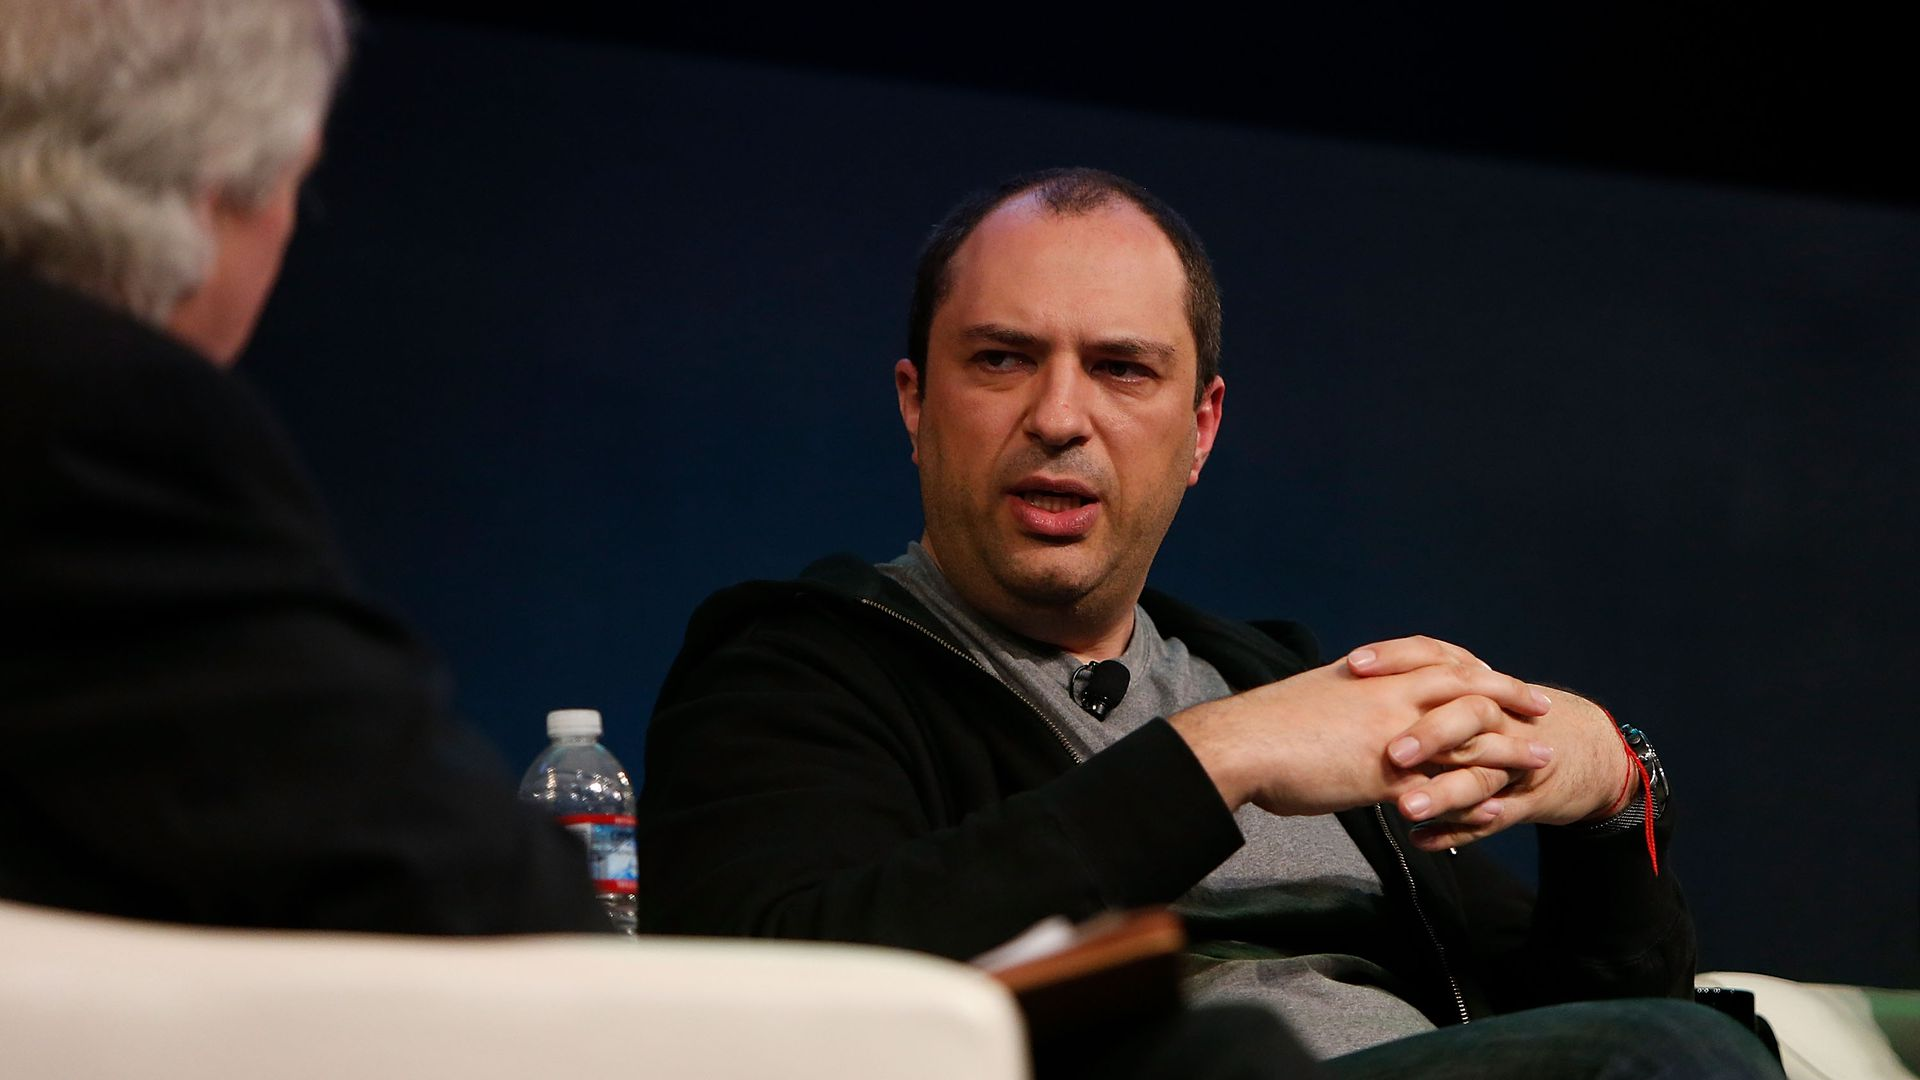 Jan Koum on stage